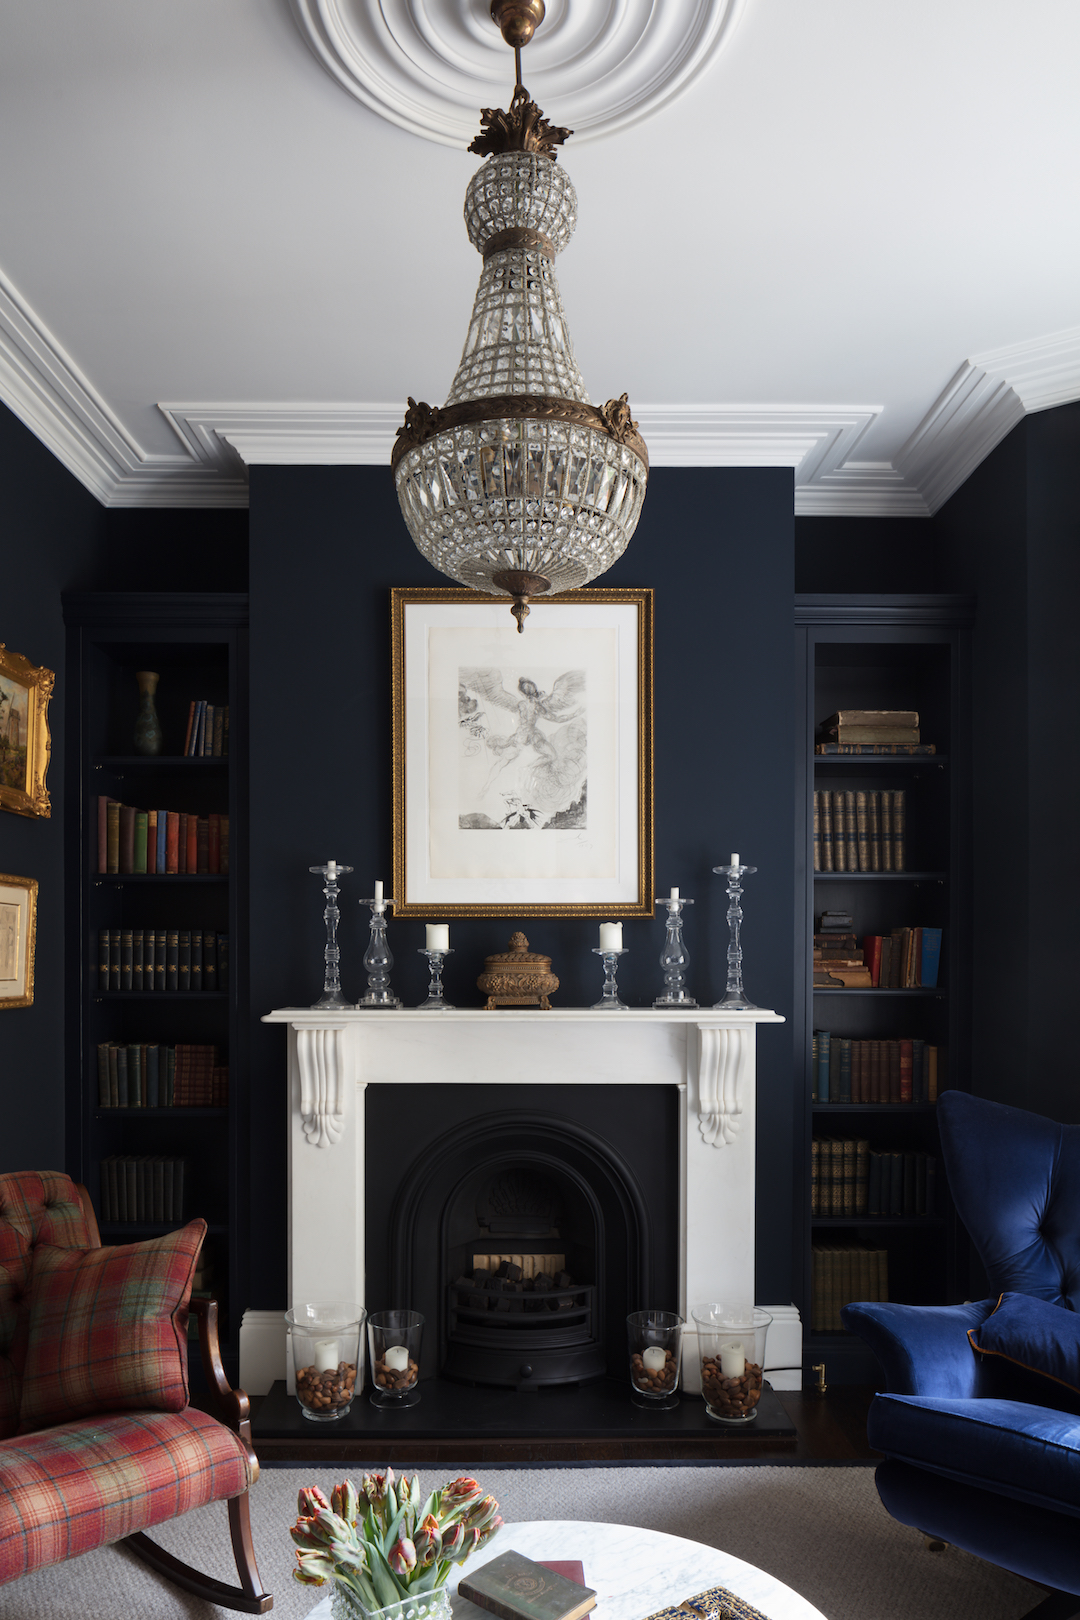 emma-collins-interiors-blackheath-project-humphrey-munson-2